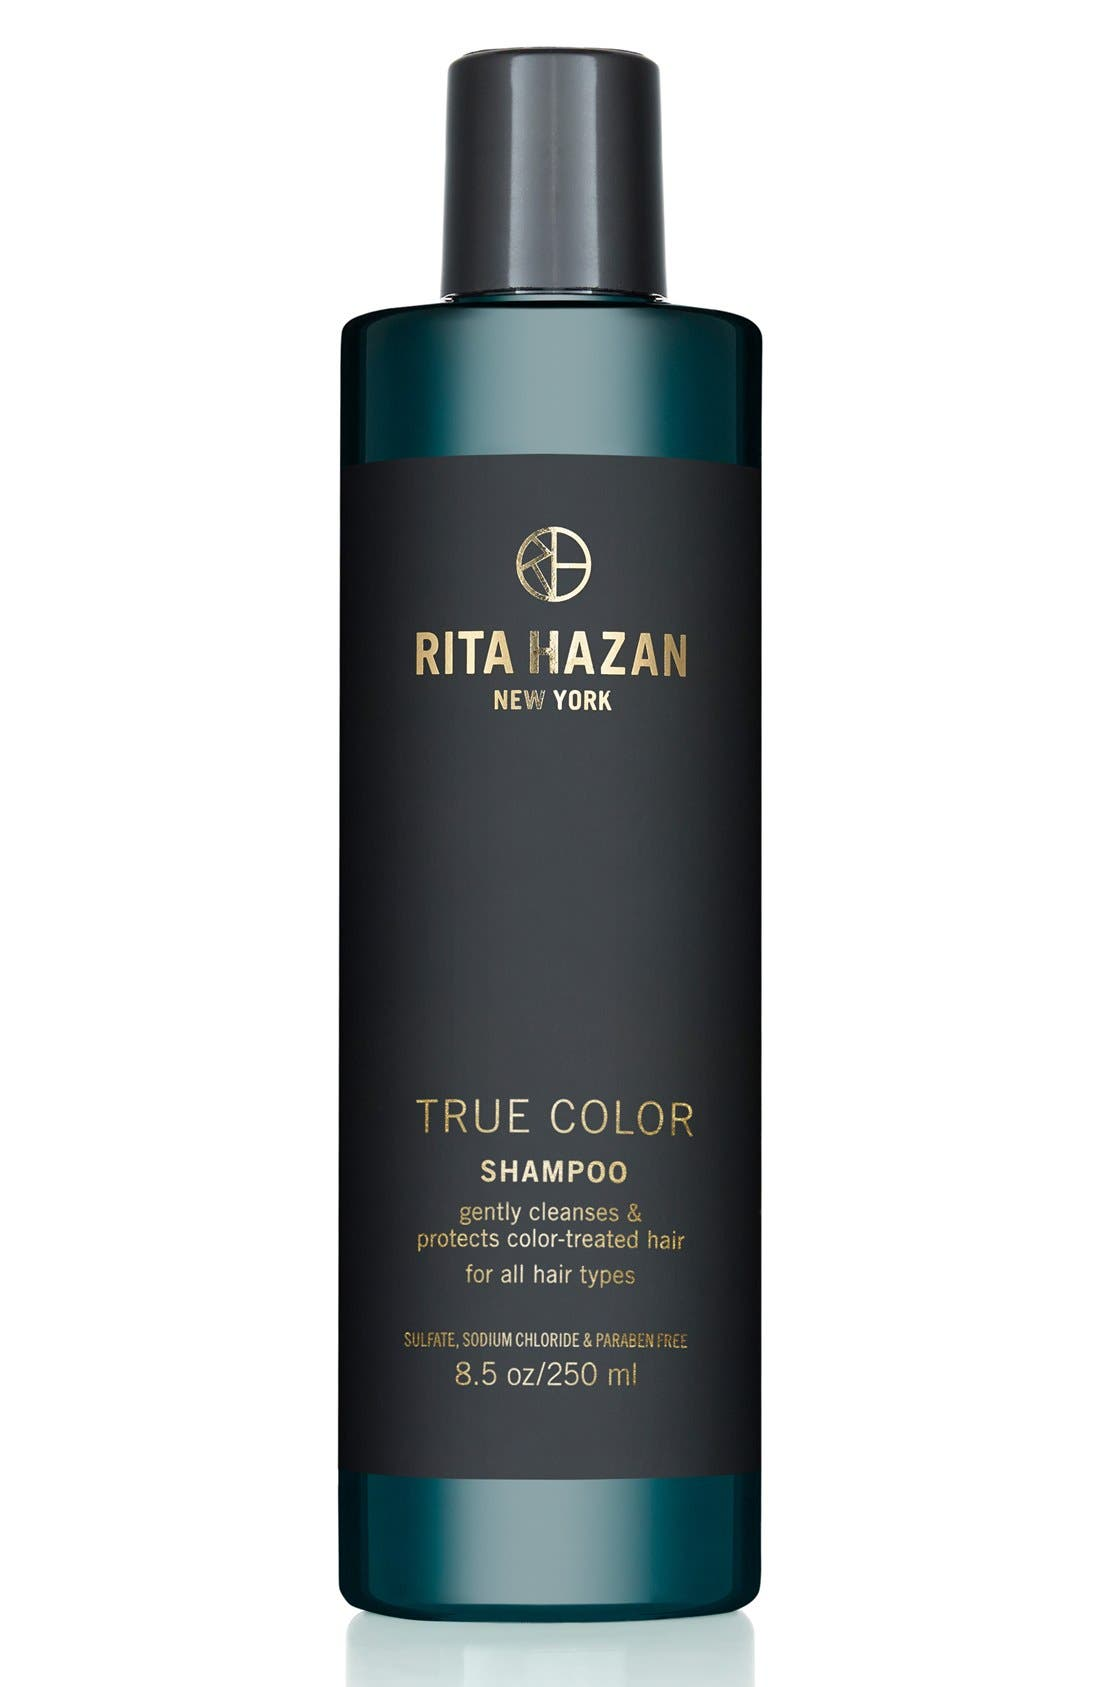 RITA HAZAN NEW YORK 'True Color' Shampoo